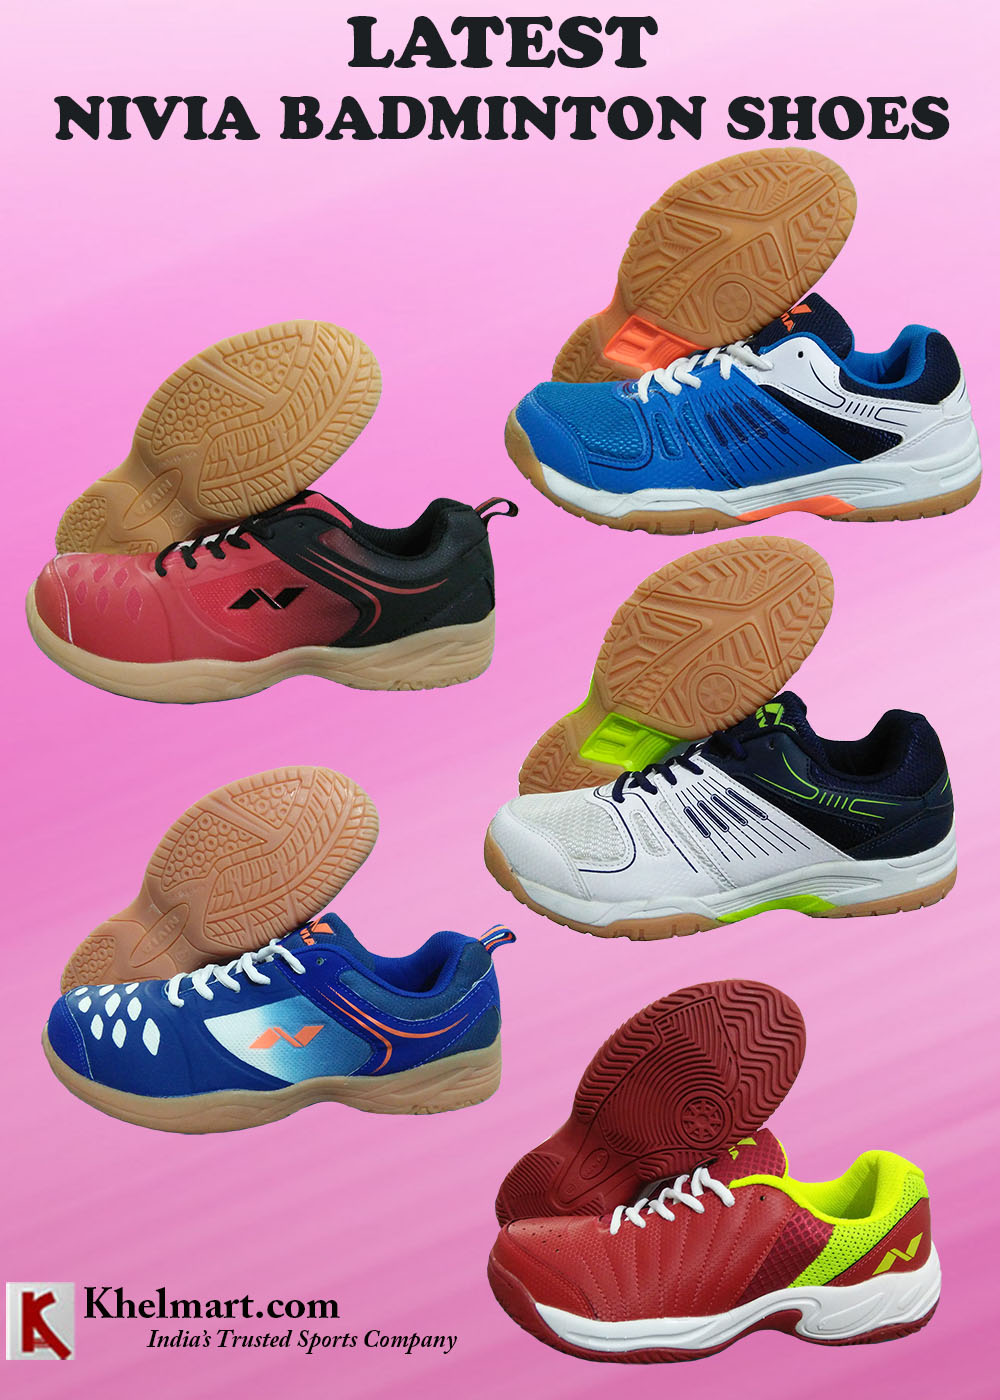 LATEST NIVIA BADMINTON SHOES